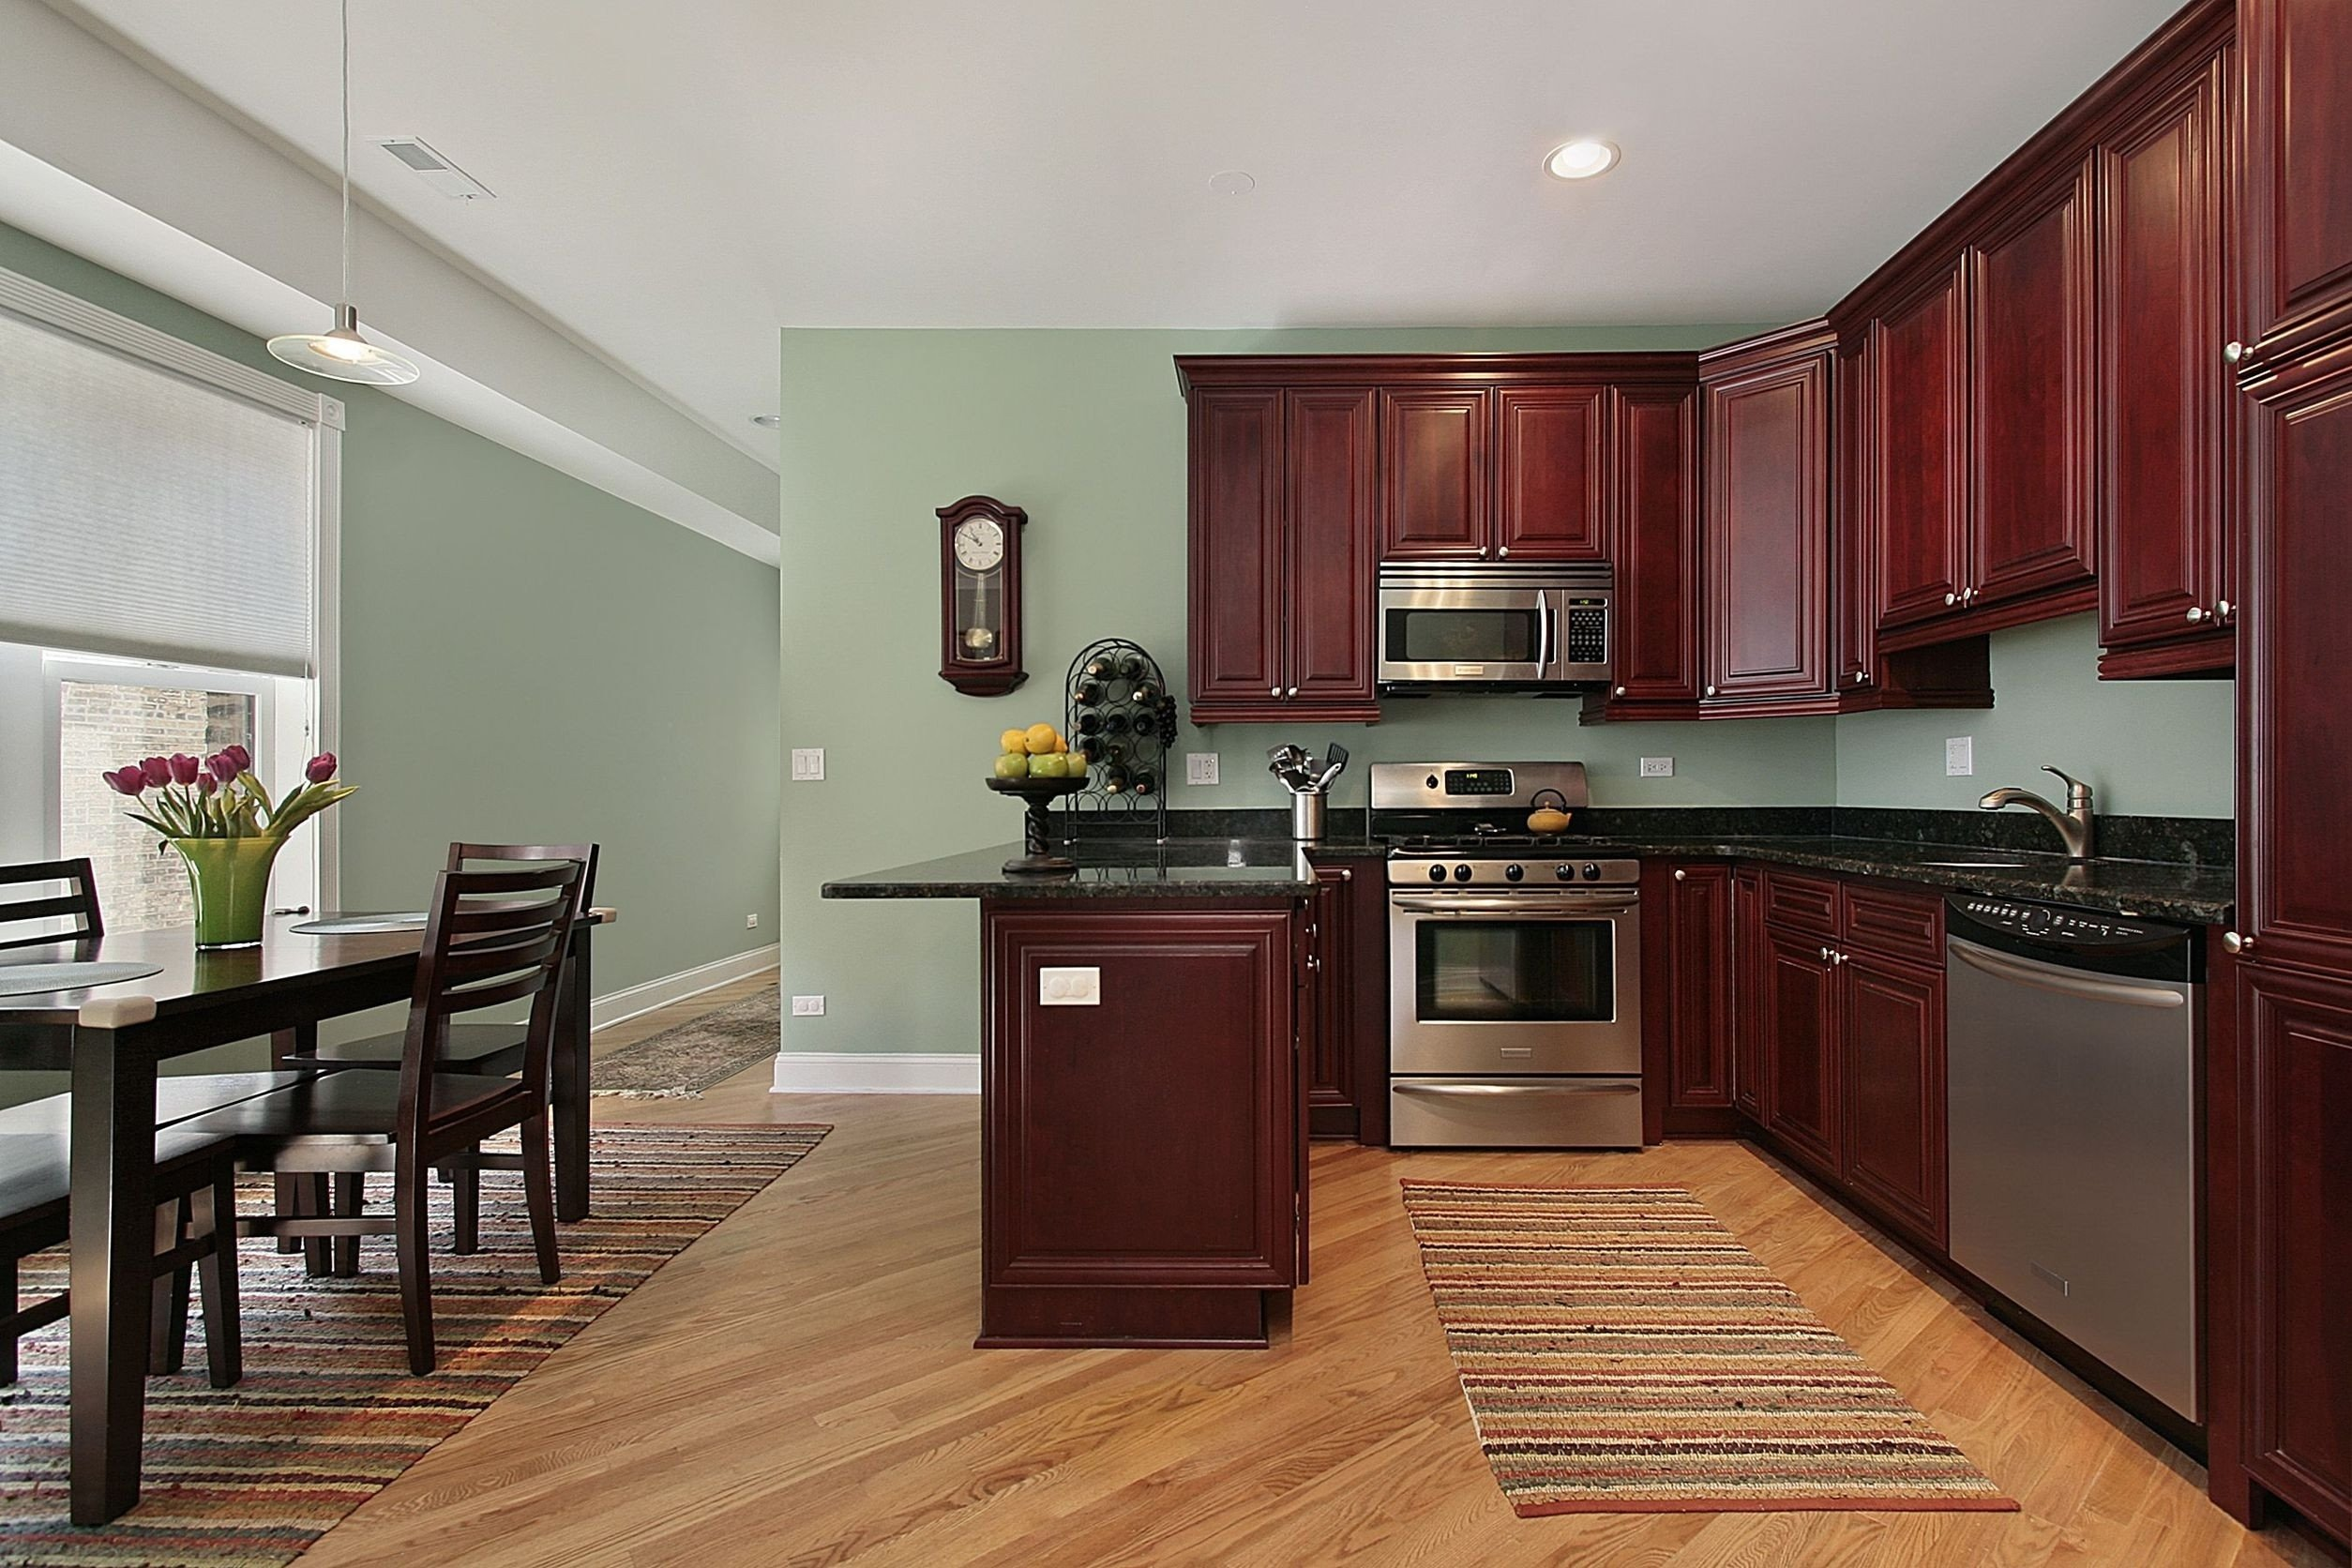 10 Lovable Kitchen Color Ideas With Maple Cabinets amazing kitchen paint colors with maple cabinets aeaart design 2020